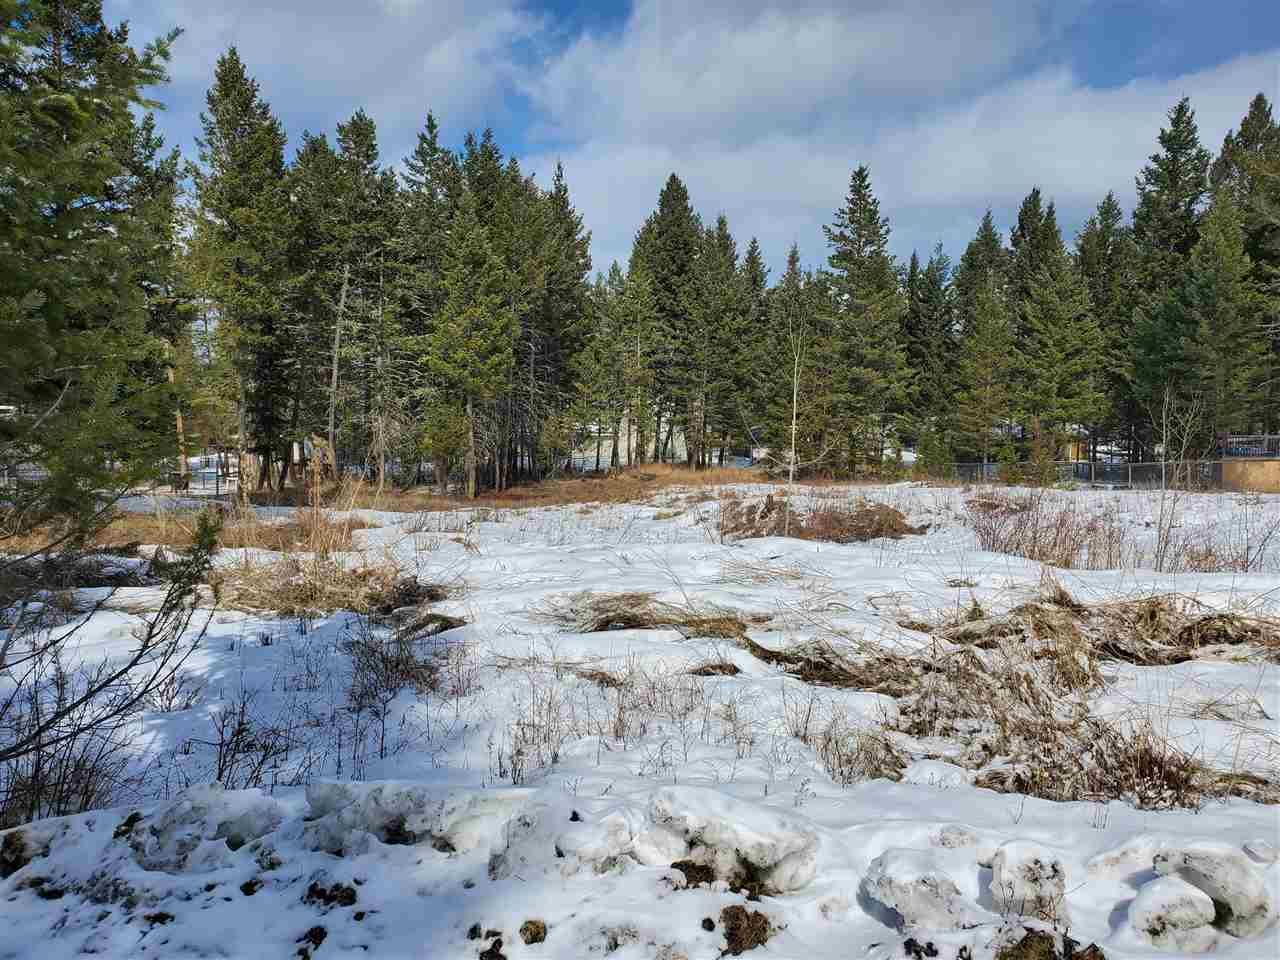 Main Photo: LOT 19 DONSLEEQUA Road in 108 Mile Ranch: 108 Ranch Land for sale (100 Mile House (Zone 10))  : MLS®# R2559267